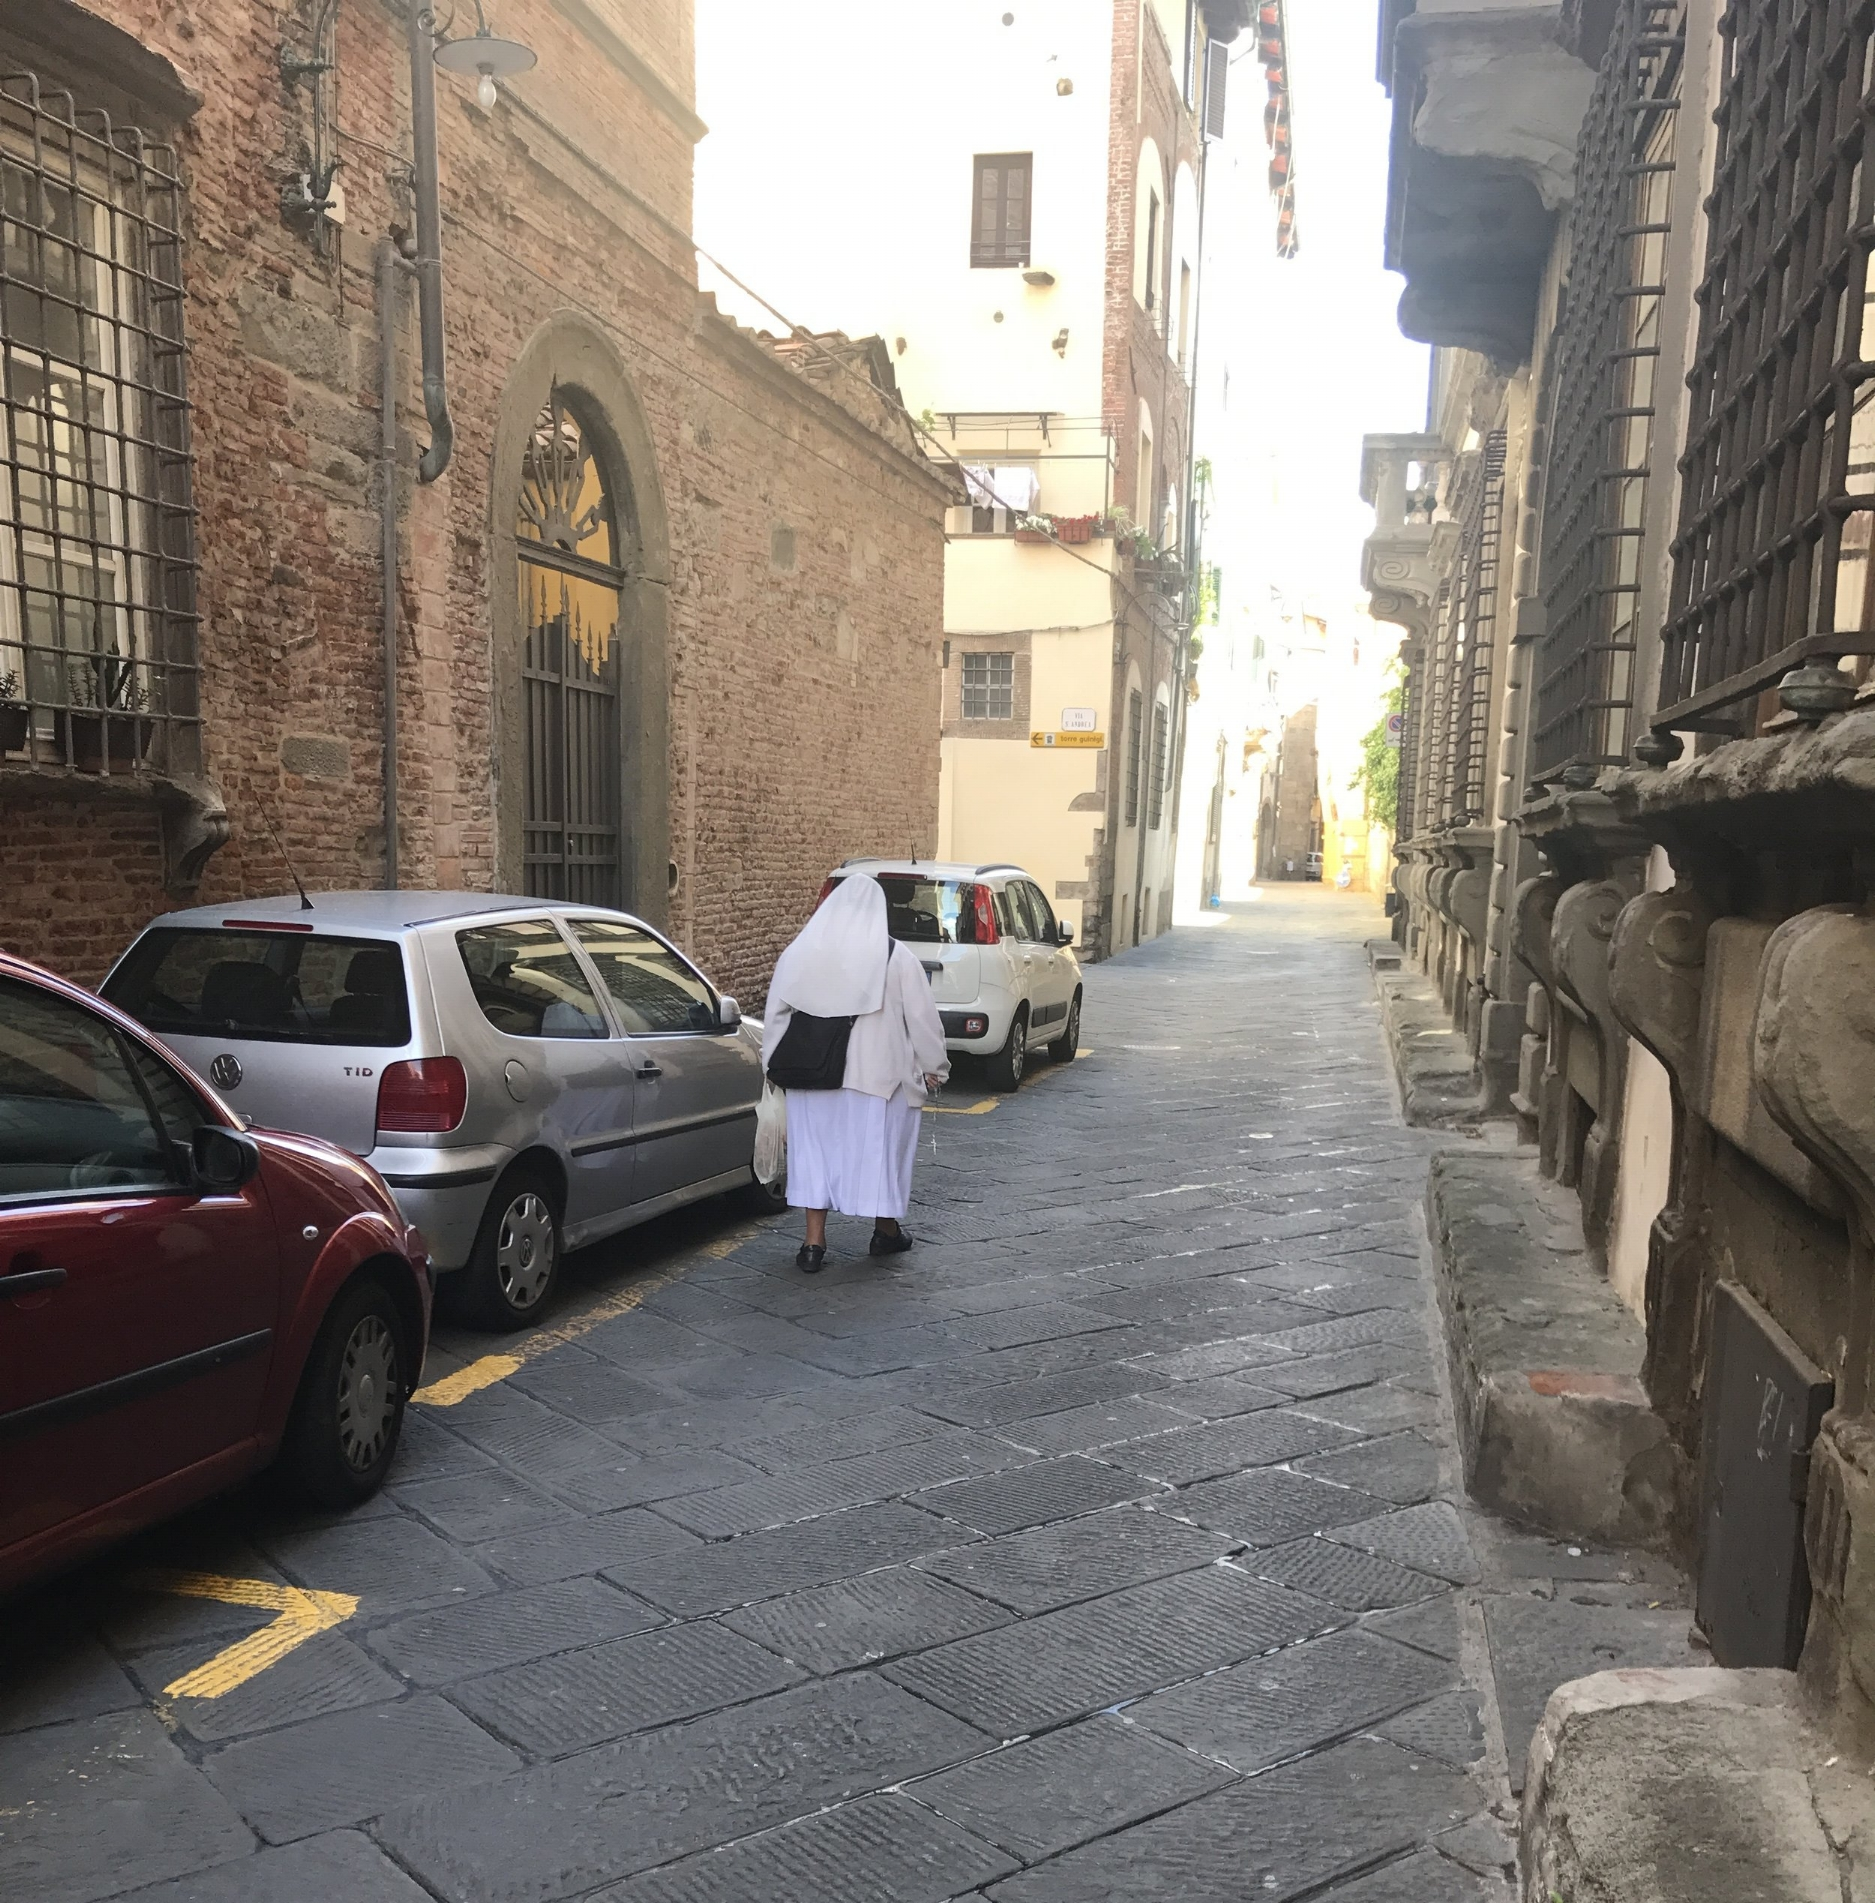 A nun walks toward a sun-splashed area of town.